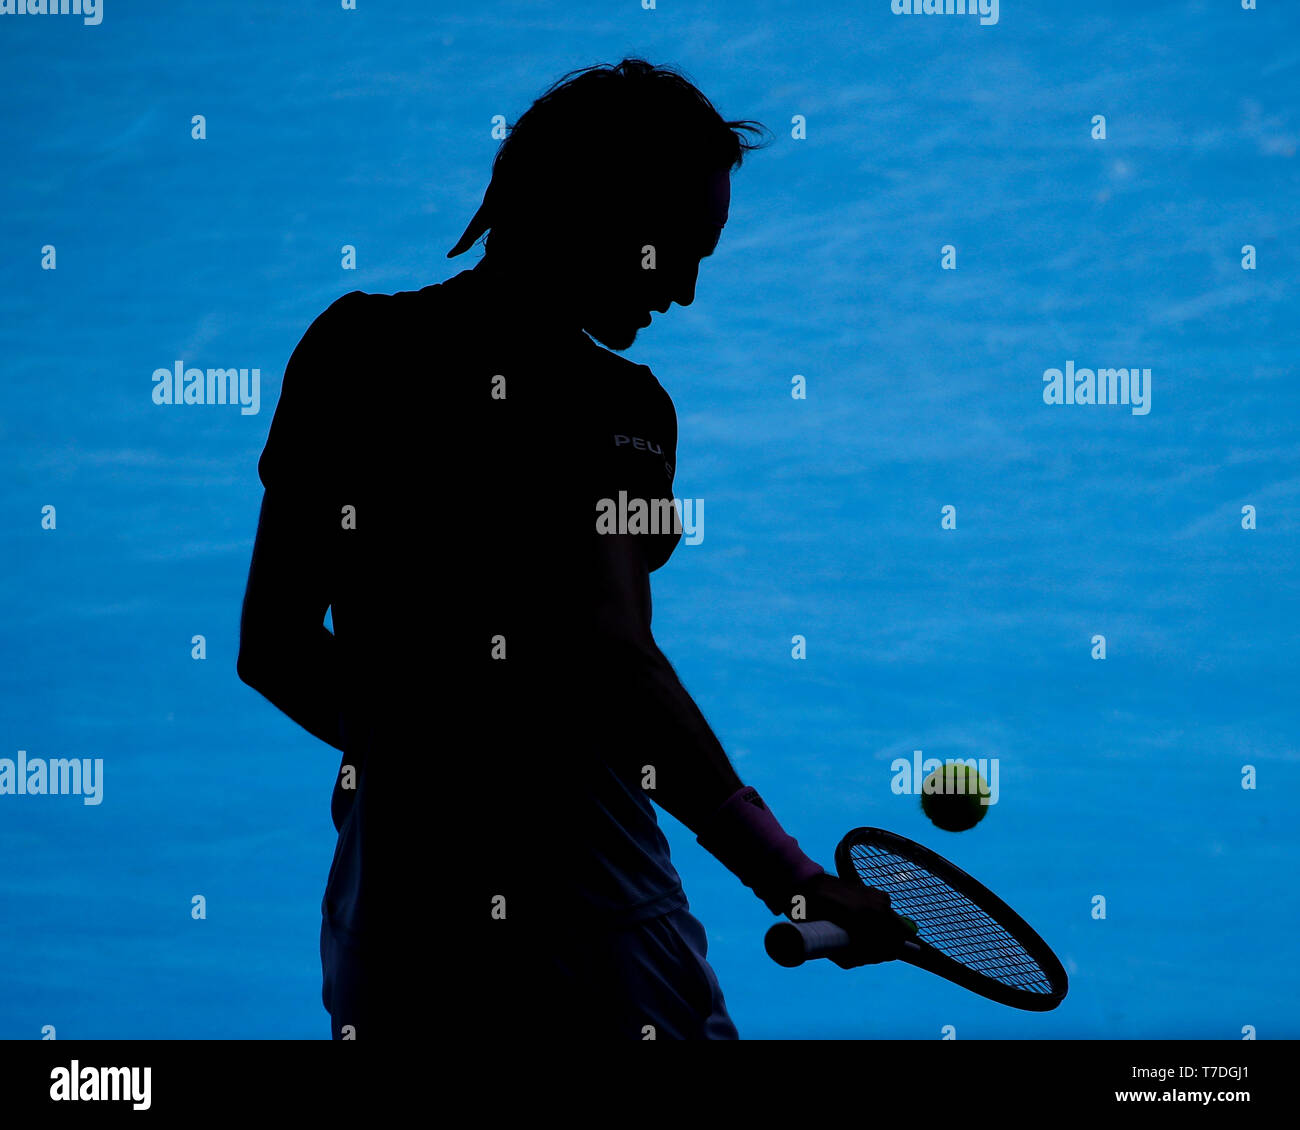 Silhouette of German tennis player Alexander Zverev standing with tennis ball and racquet during Australian Open 2019 tennis tournament, Melbourne Par - Stock Image